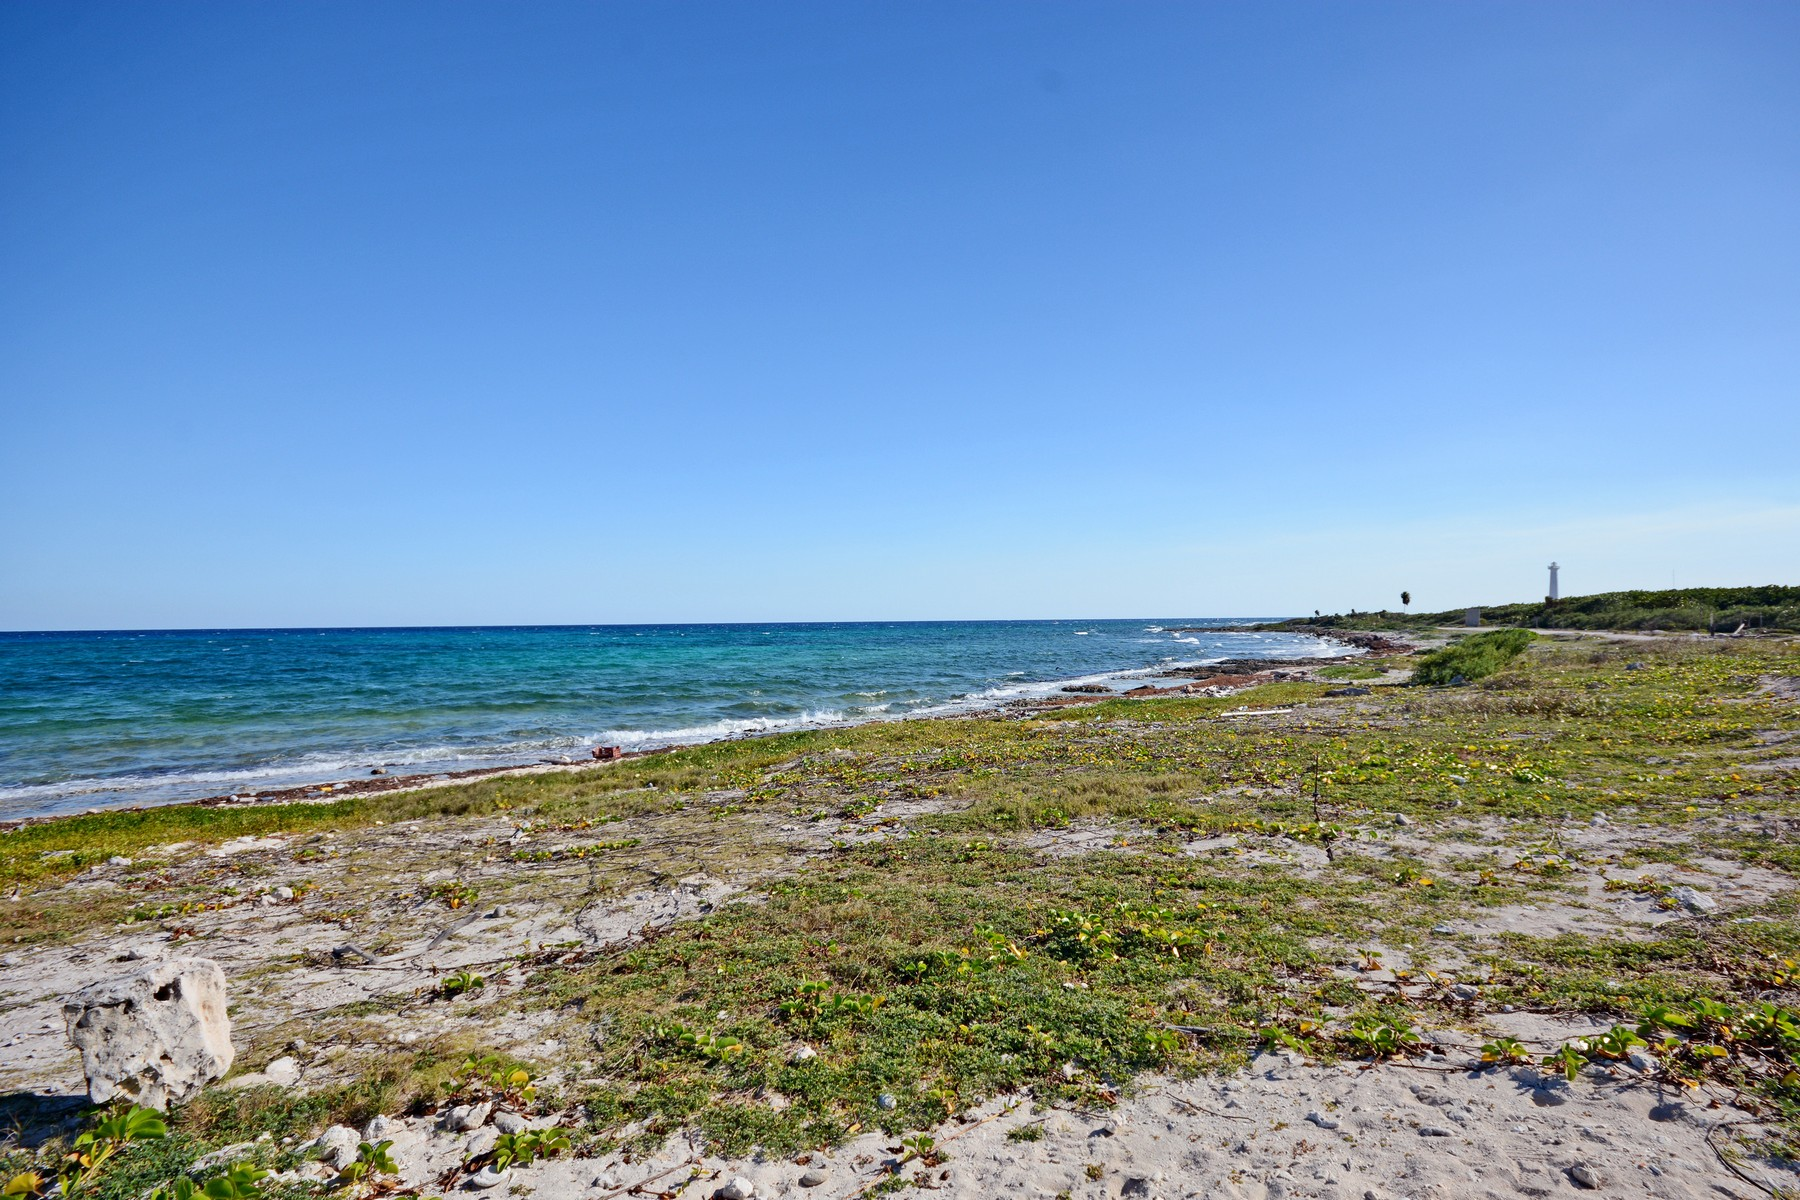 Additional photo for property listing at BEACHFRONT MAJAHUAL LOT Beachfront Majahual Lot Carretera Cafetal-Majahual Majahual, Quintana Roo 77976 Mexico